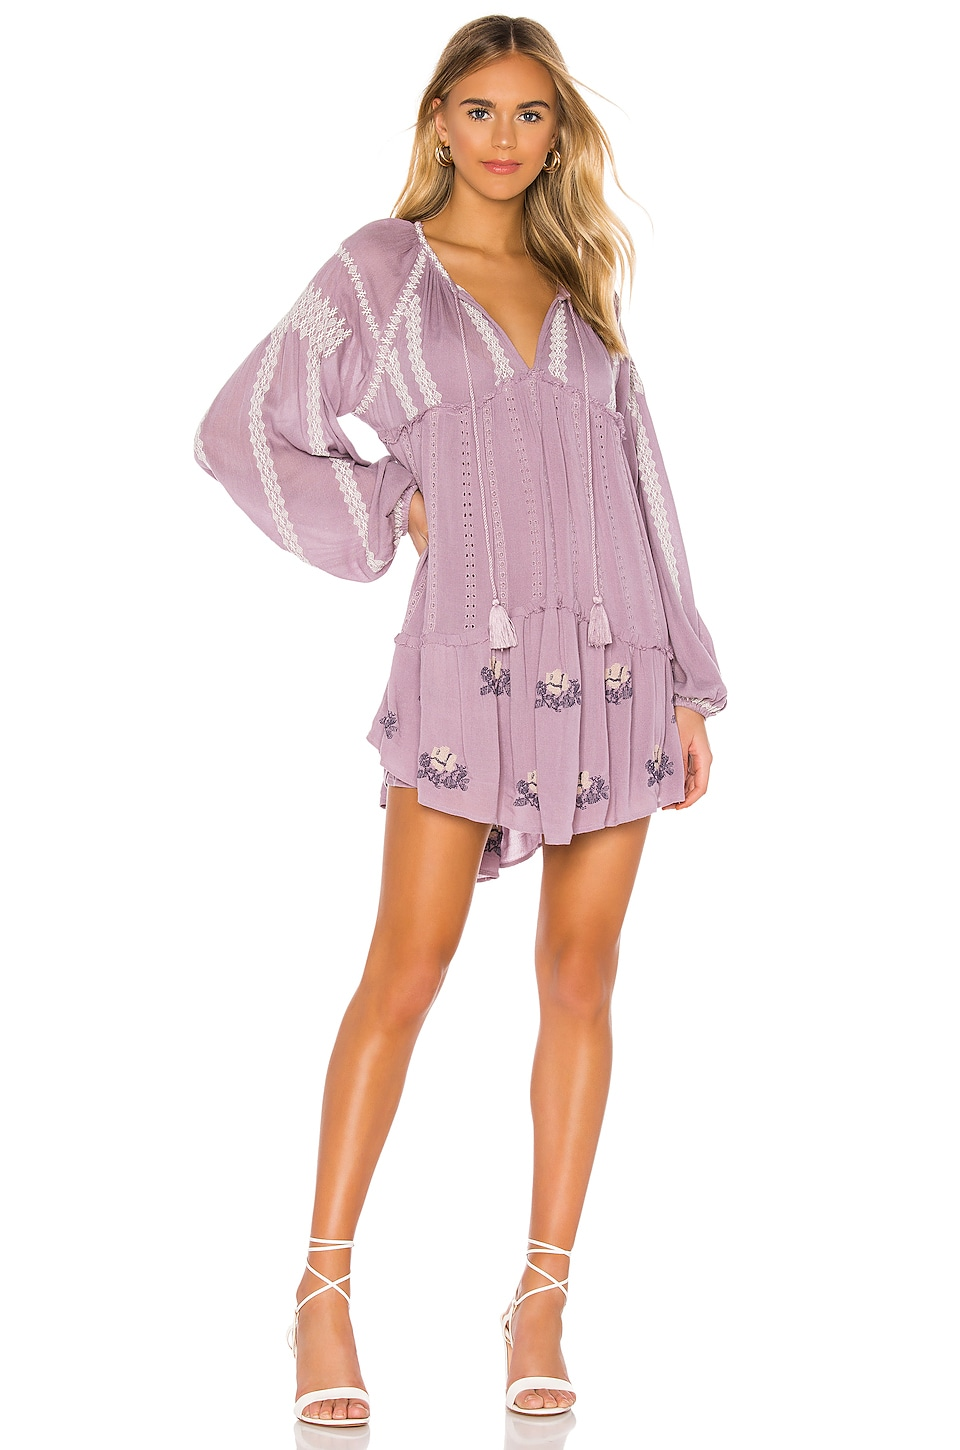 Free People Wild Horses Embroidered Mini Dress in Lilac